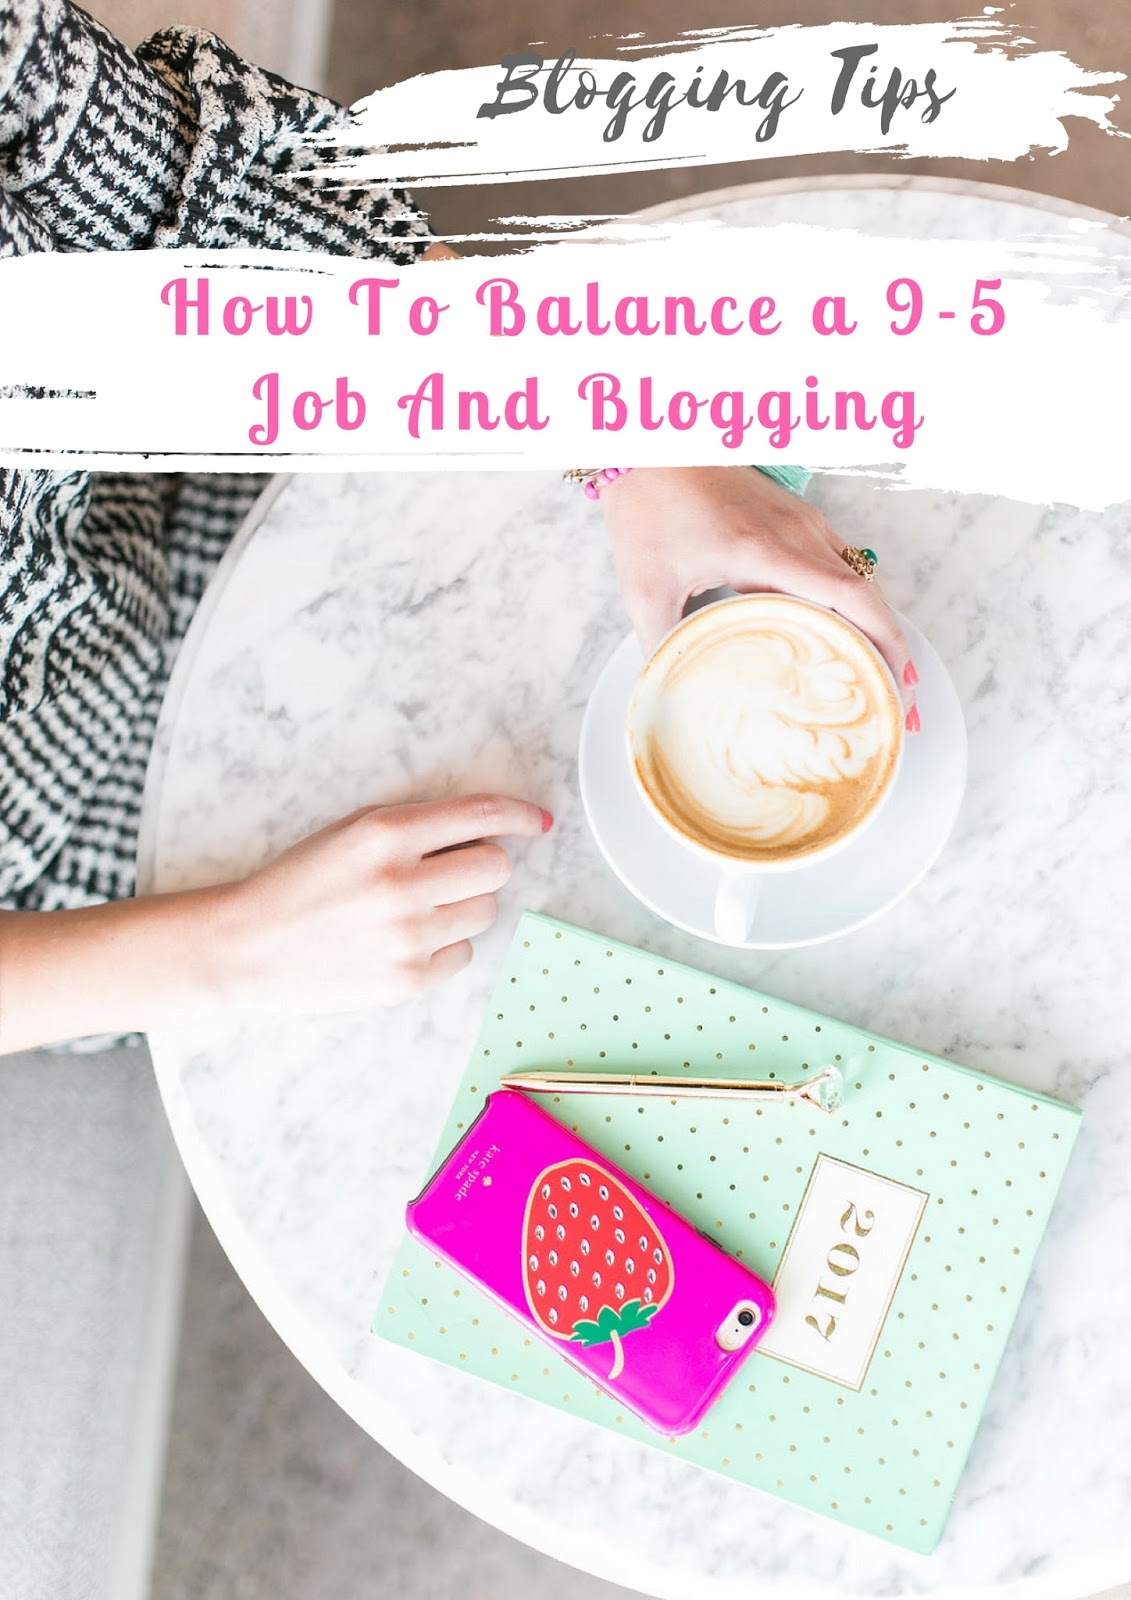 Bijuleni - How to Balance a 9-5 Job and Blogging